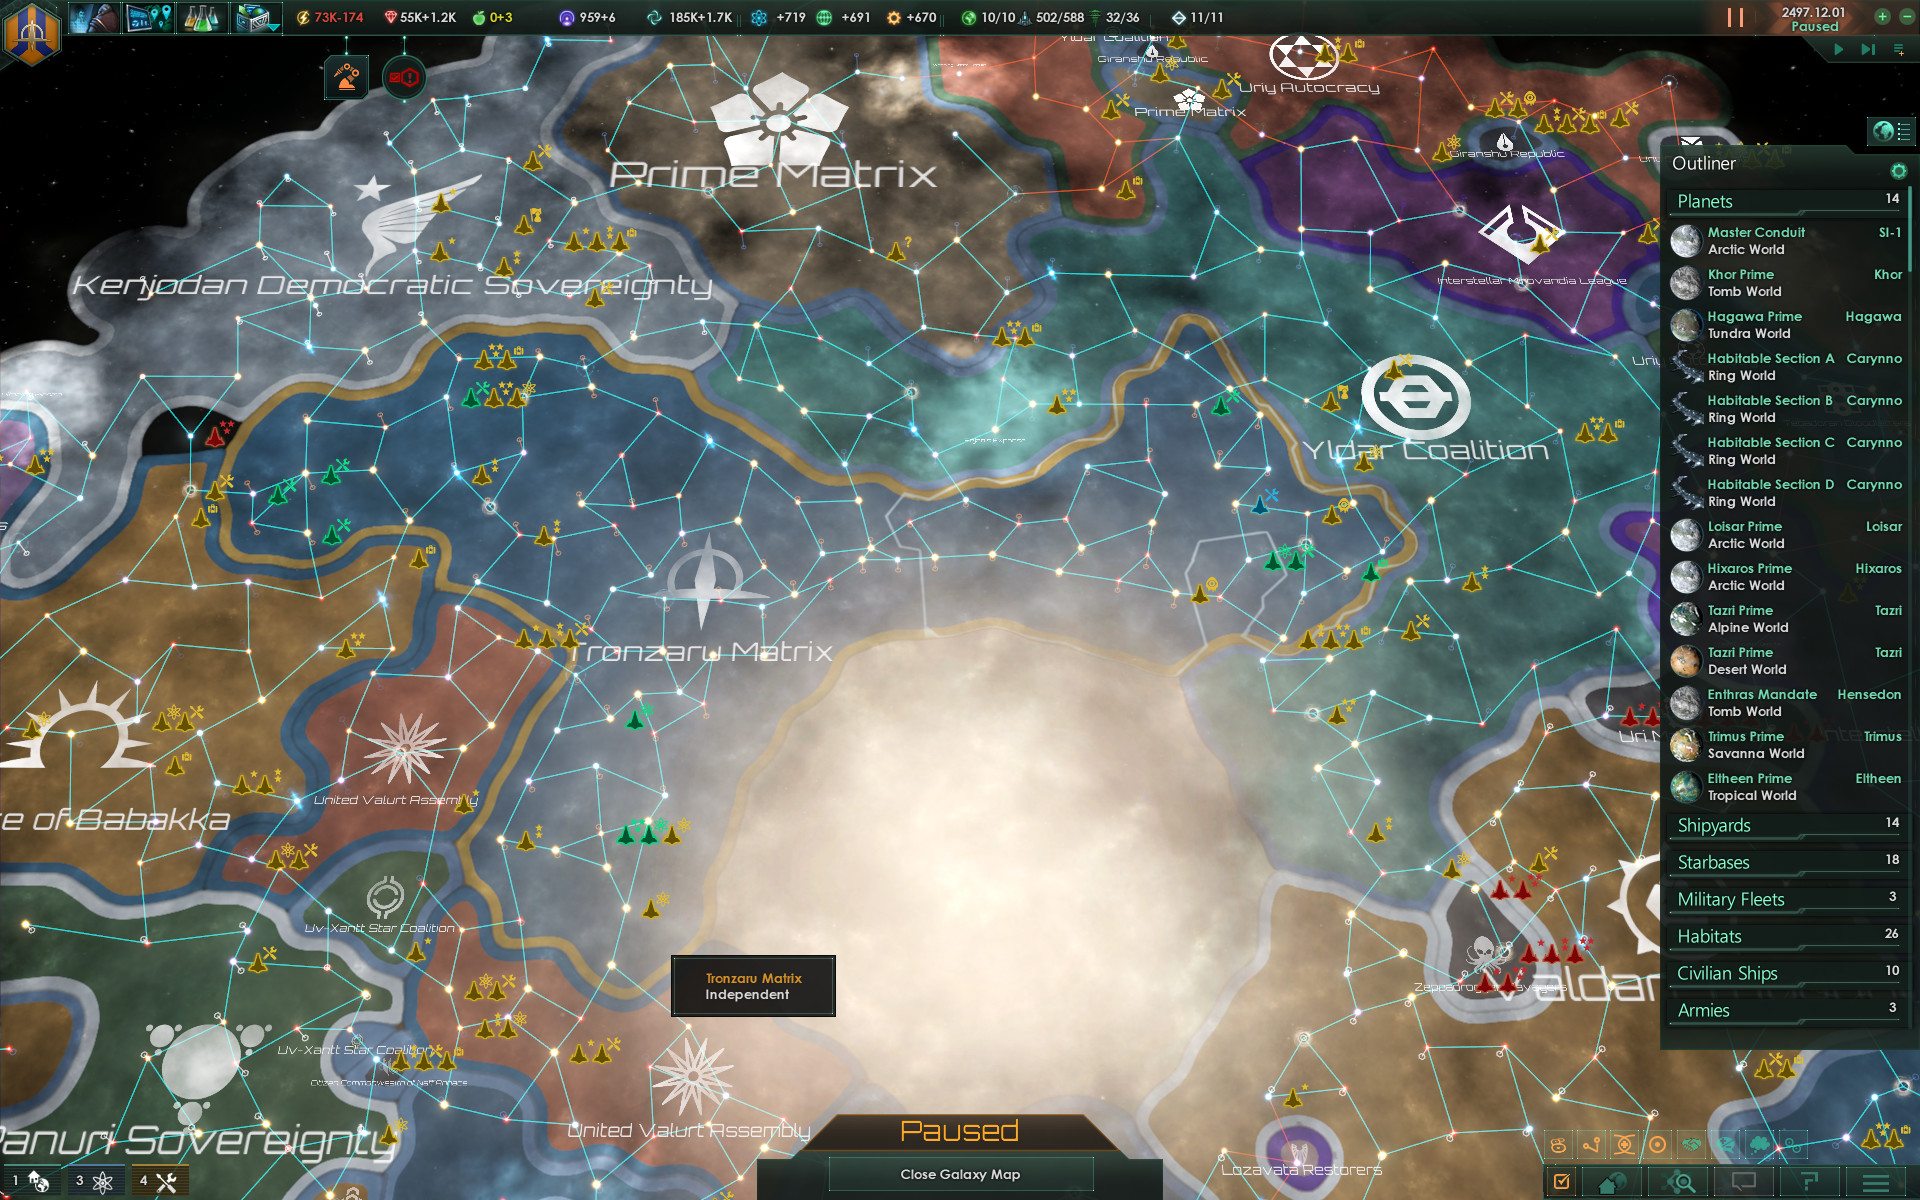 A screenshot of Stellaris's intergalactic map.